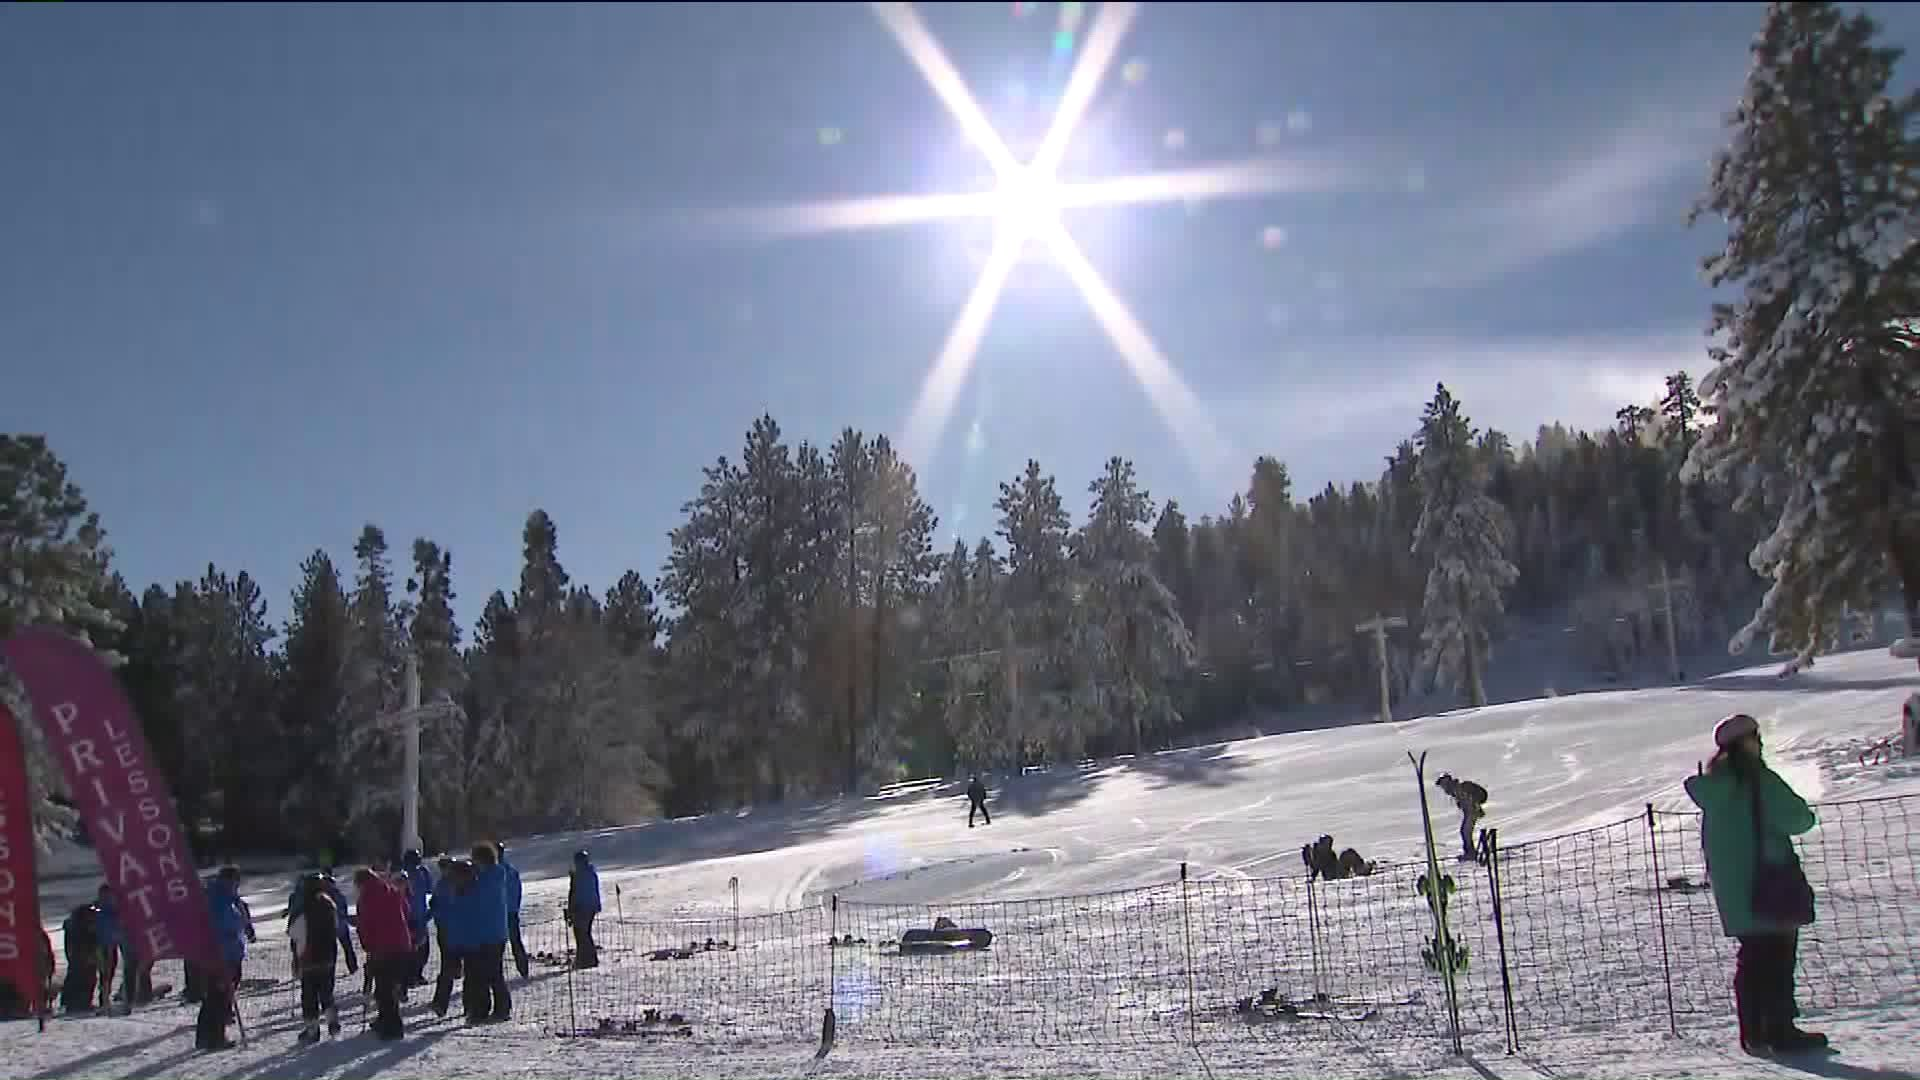 Skiers glide across the snow at Big Bear Mountain Resort on Nov. 30, 2019. (Credit: KTLA)